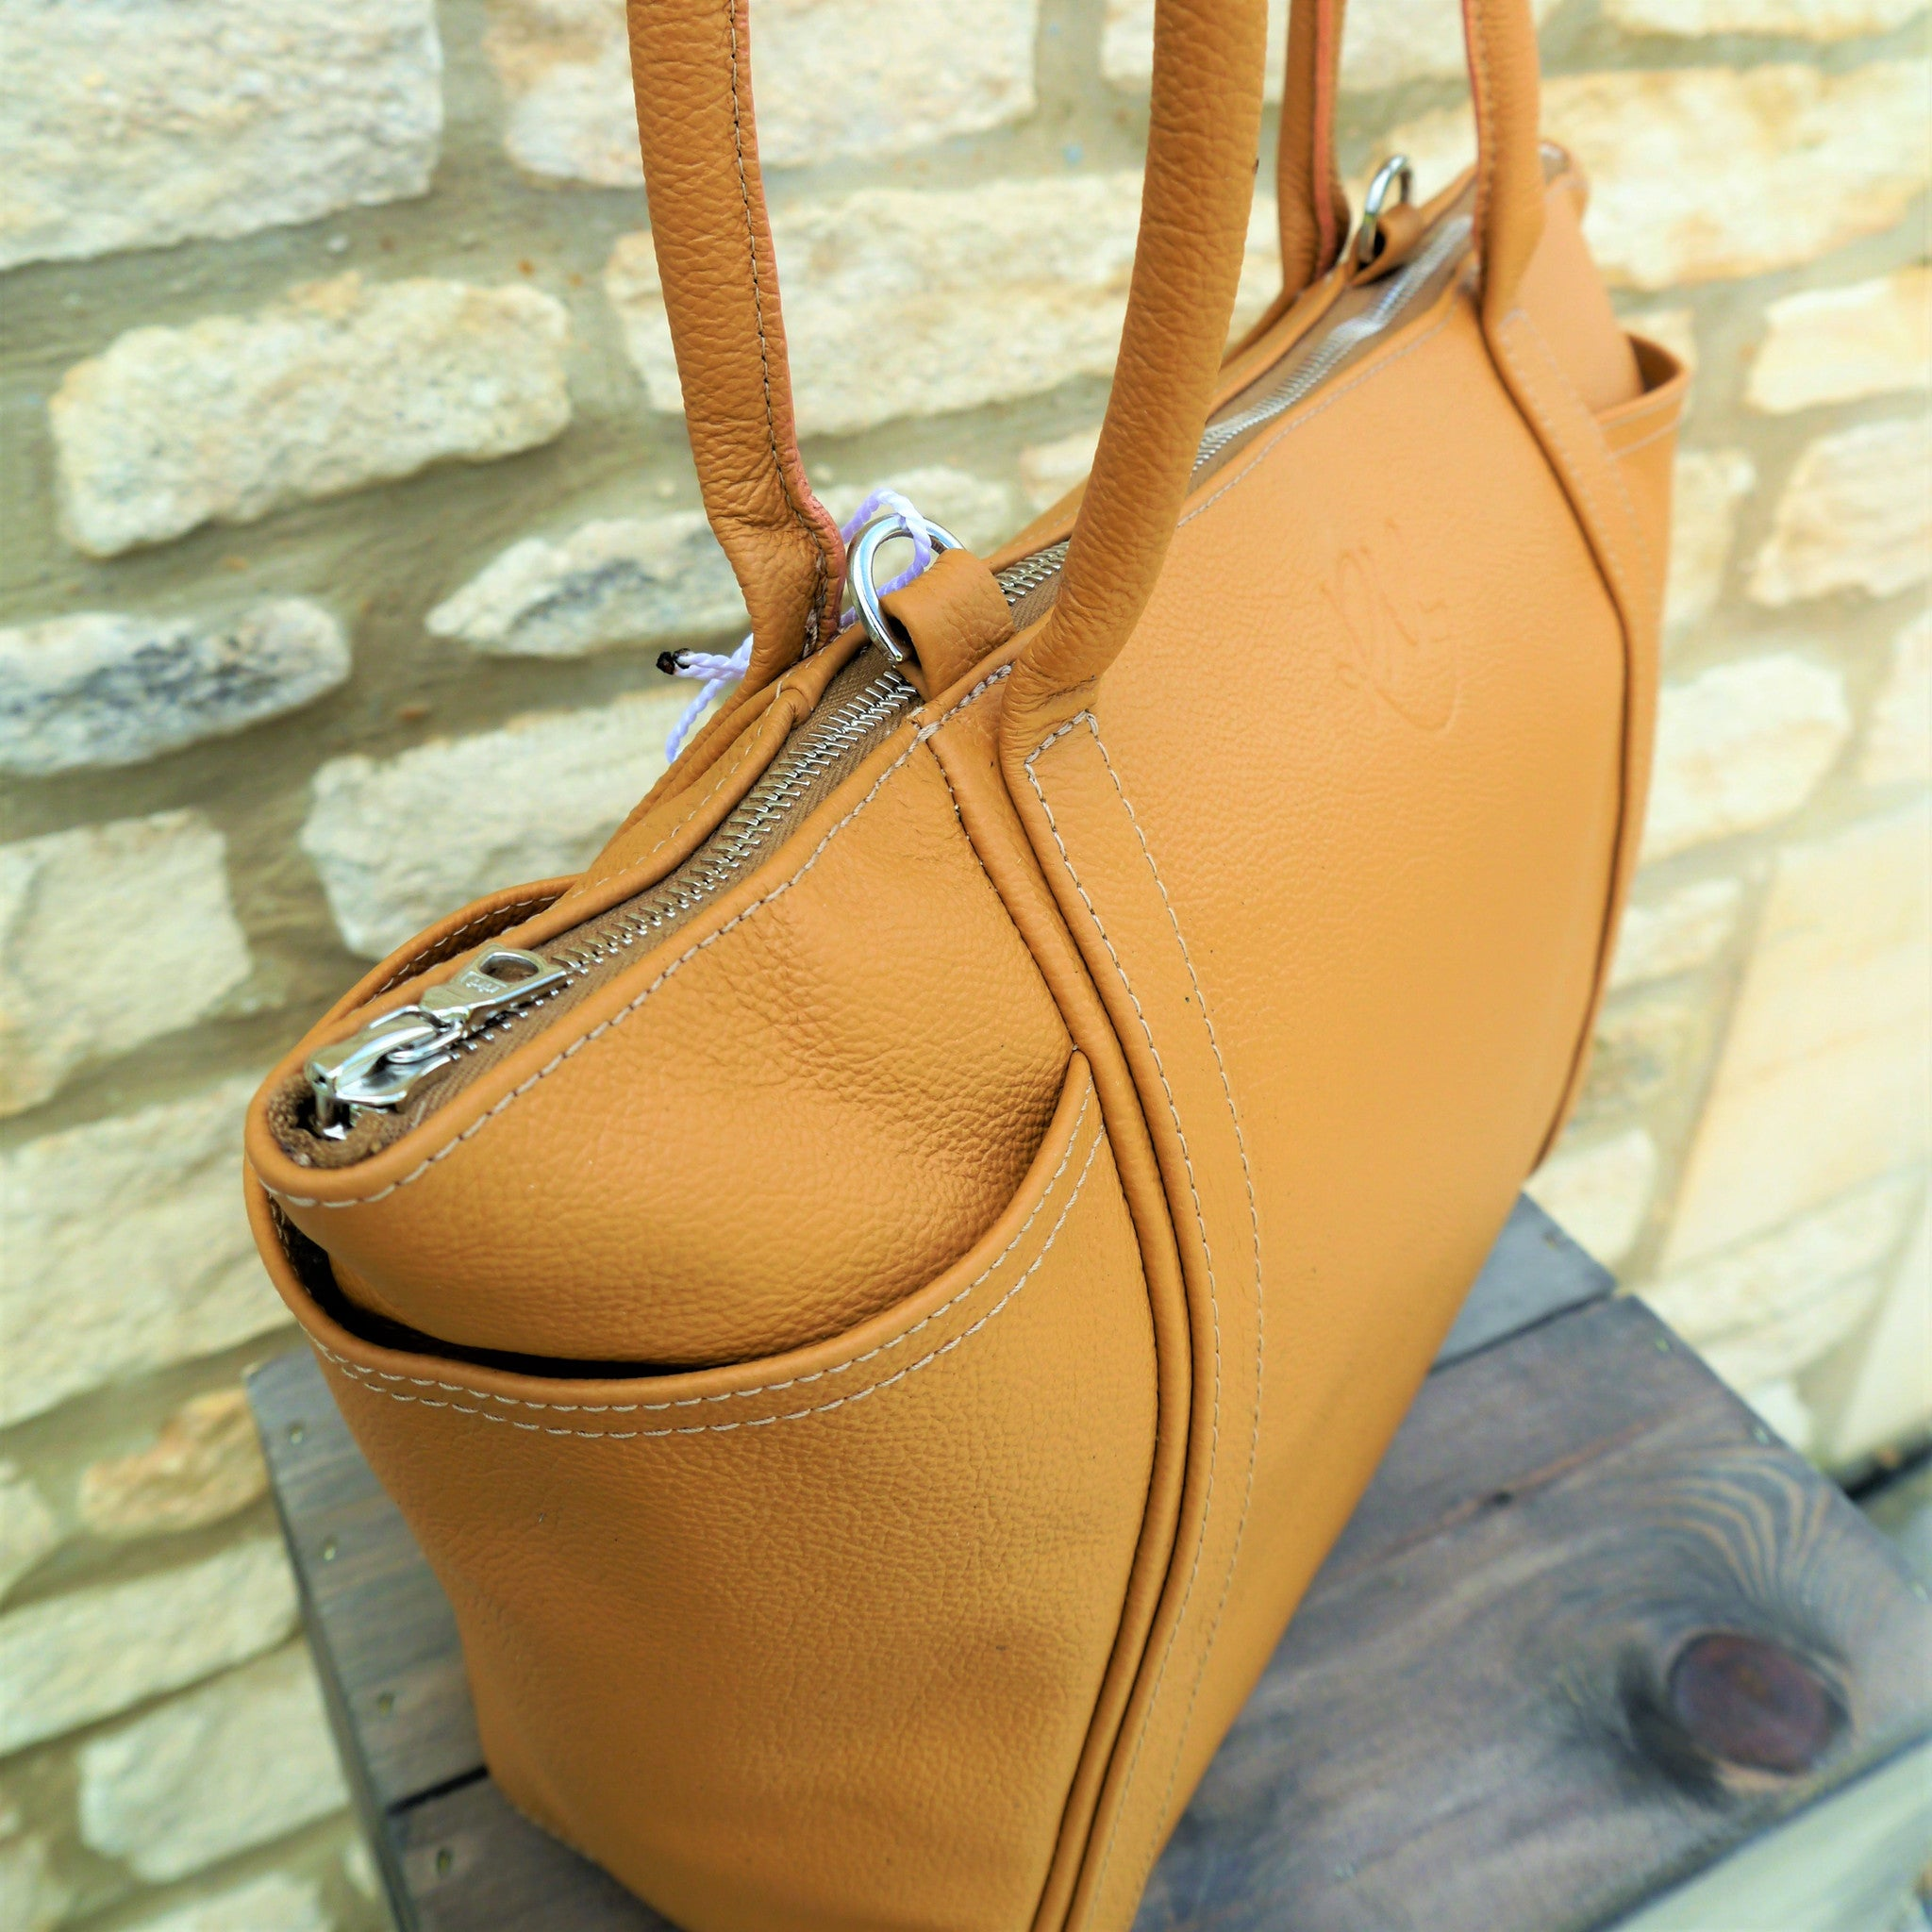 Forget Me Not Handbag in Tan